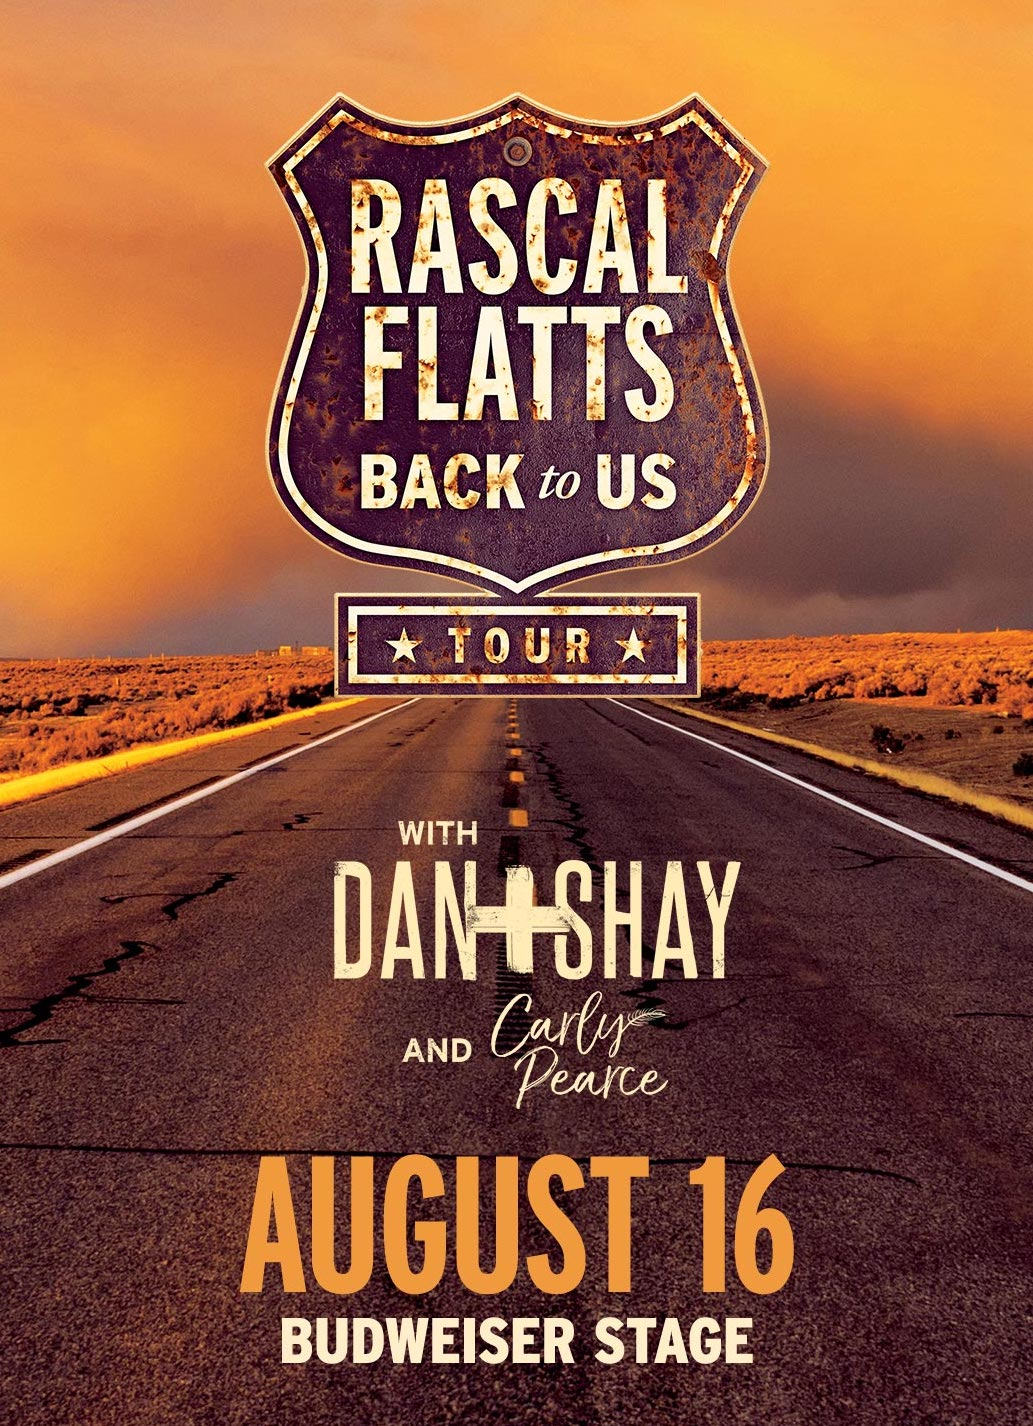 We're sending FIVE Lucky Listeners to see Rascal Flatts live in concert!